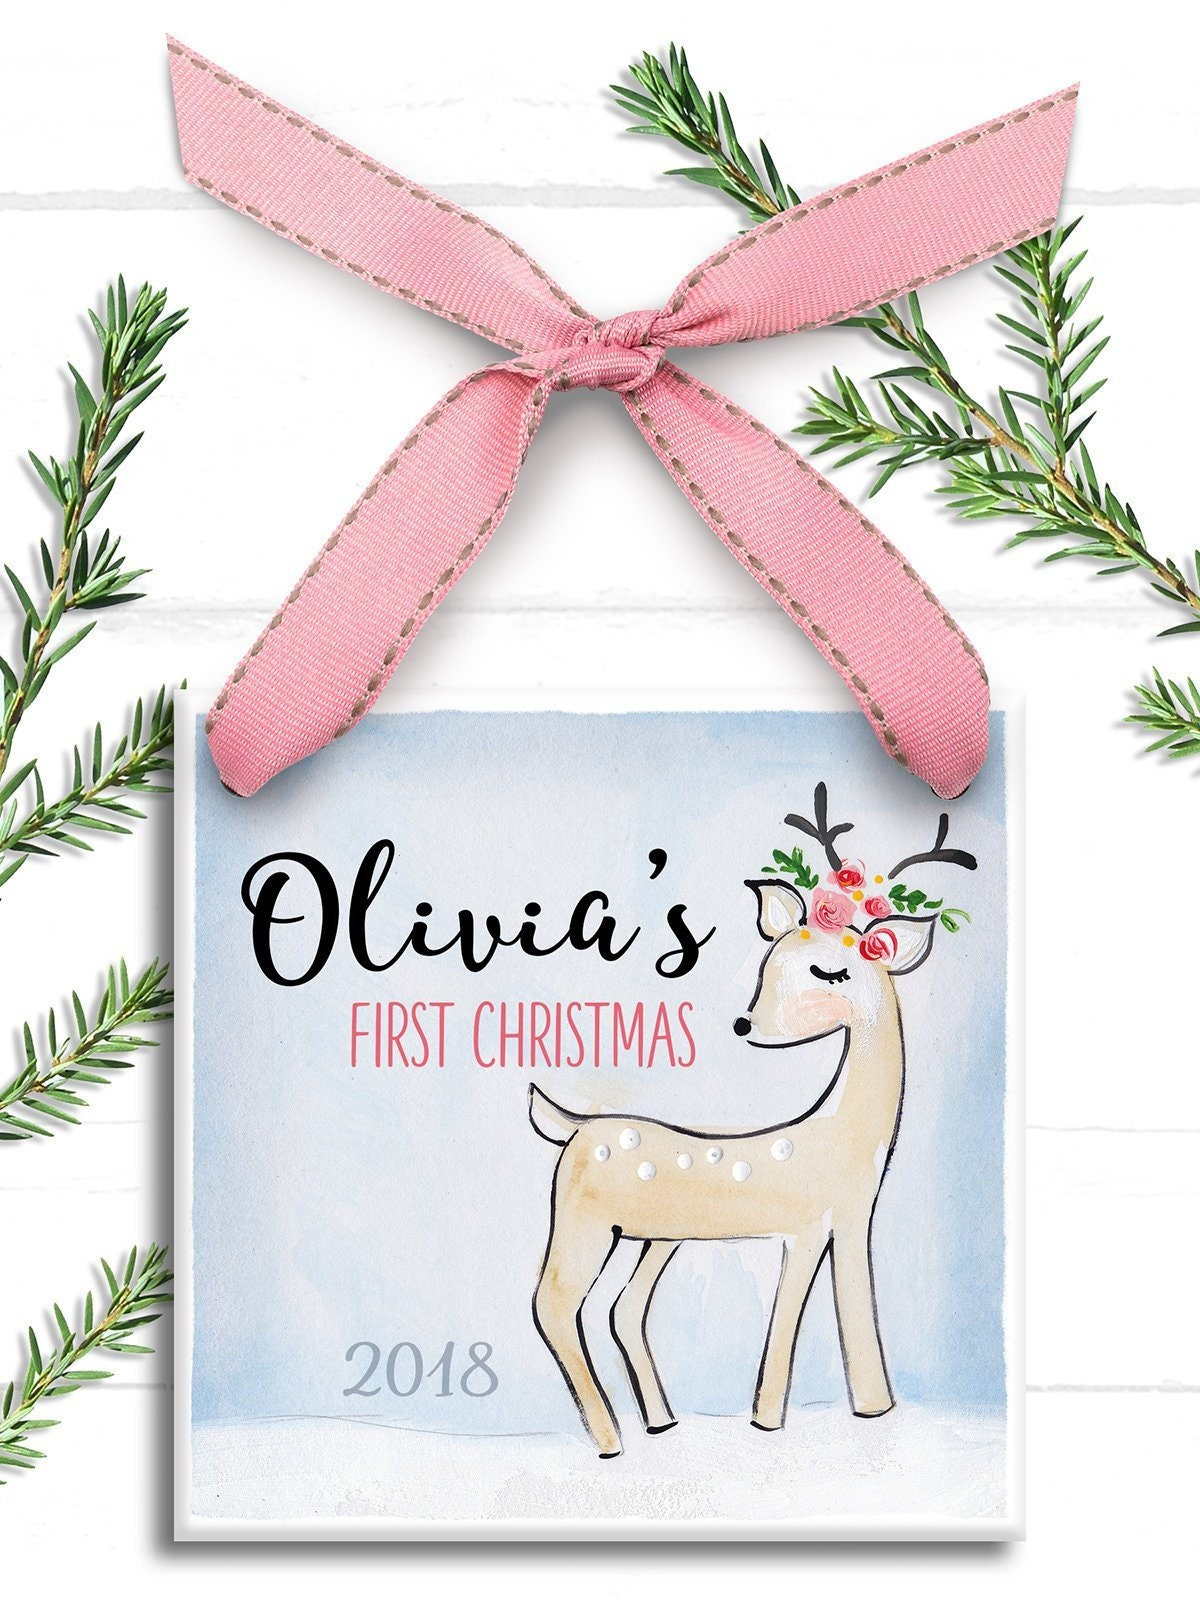 babys first christmas ornament personalized childrens ornament little deer baby 1st christmas ornament baby girl trim the tree